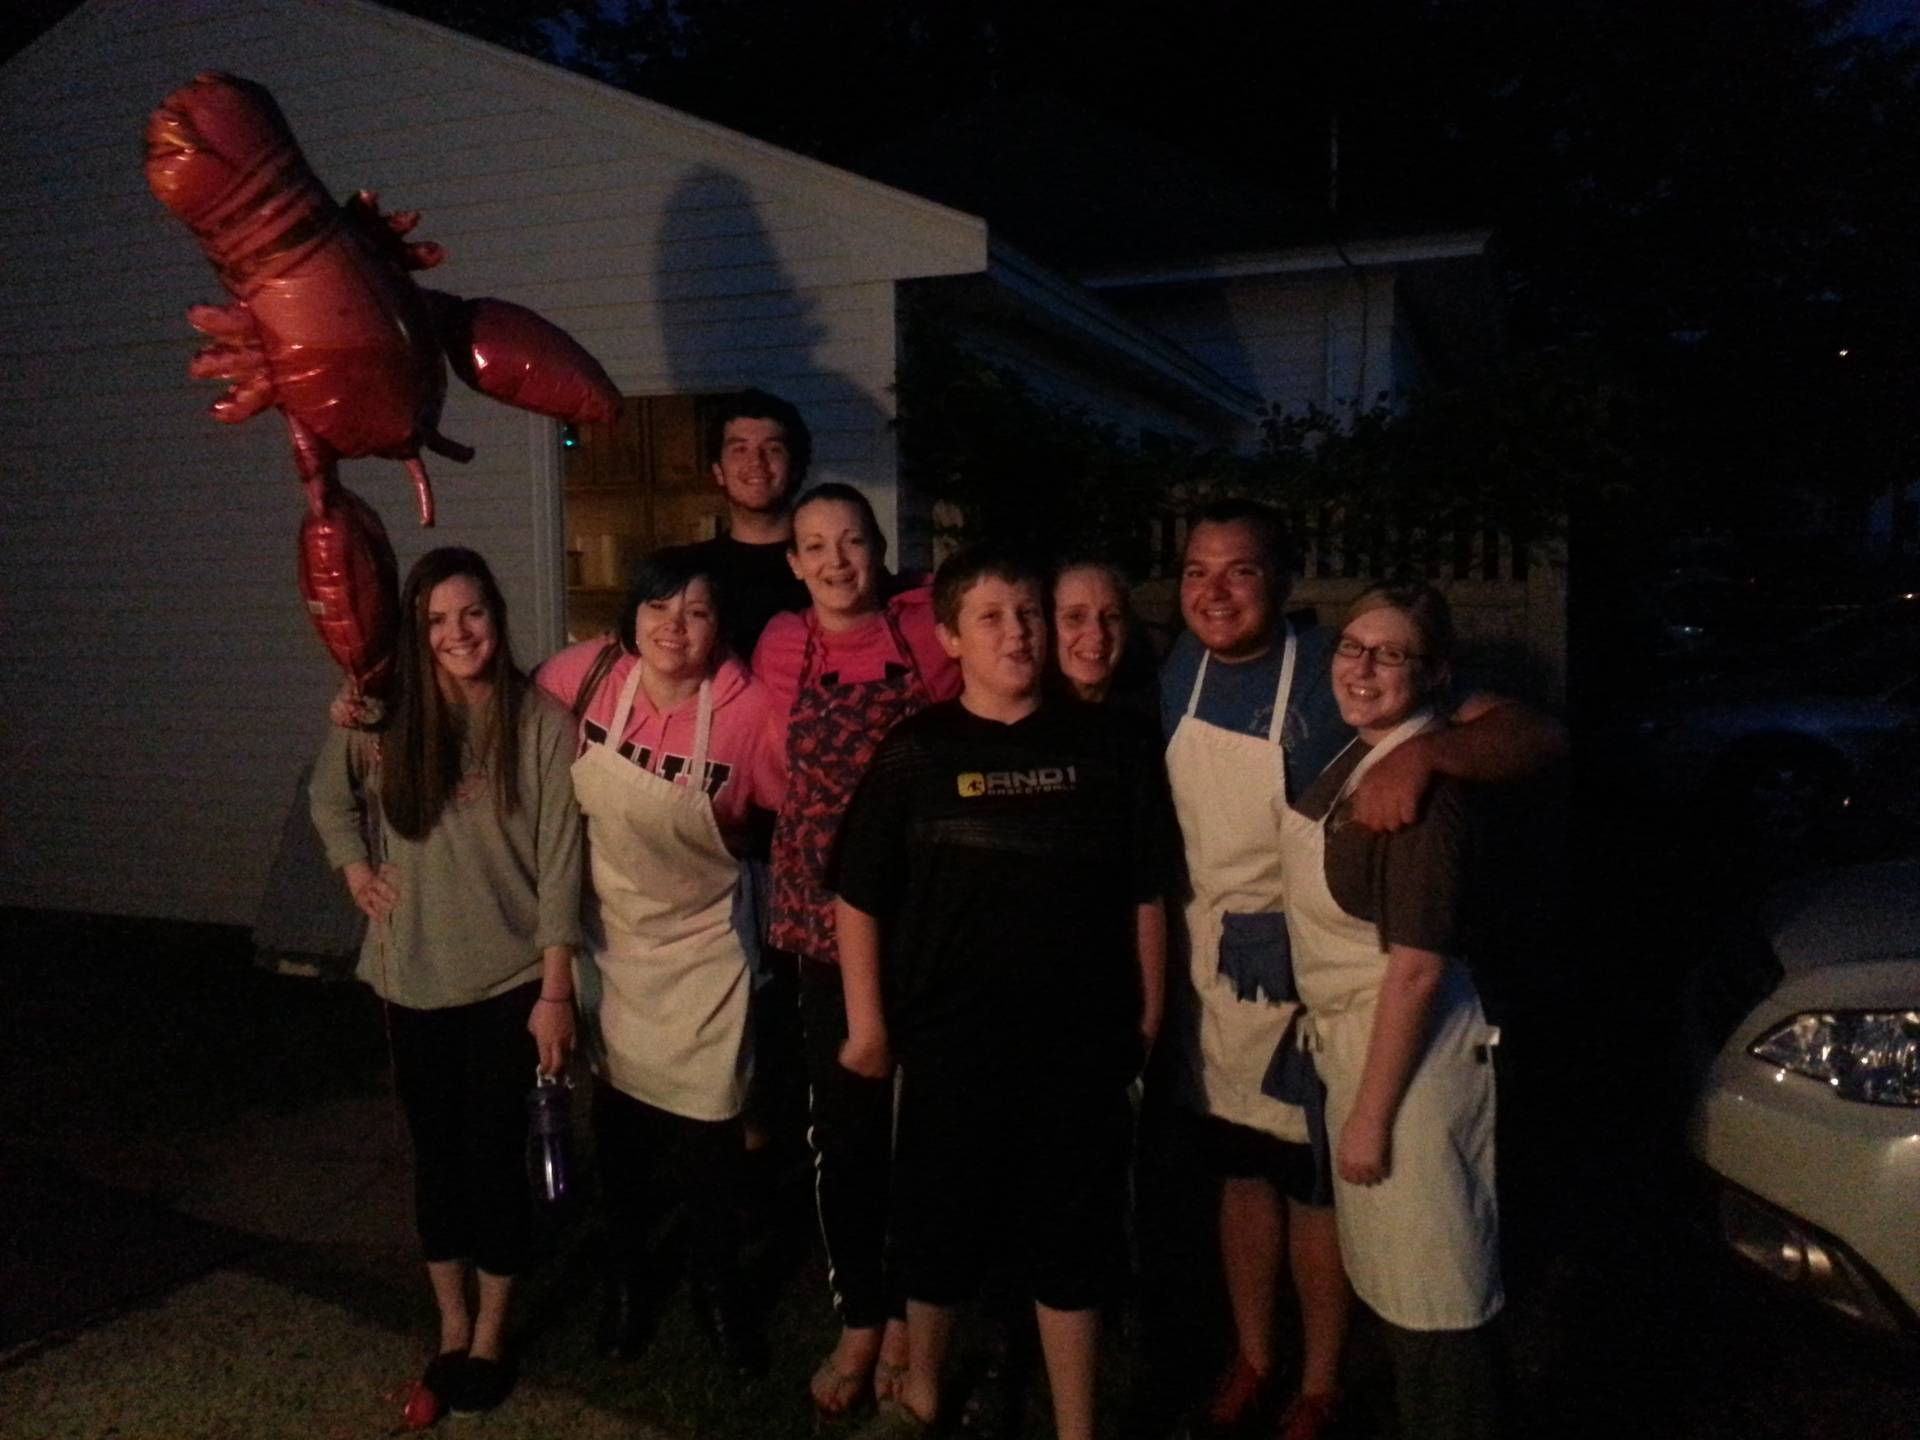 Captains Family with Lobster